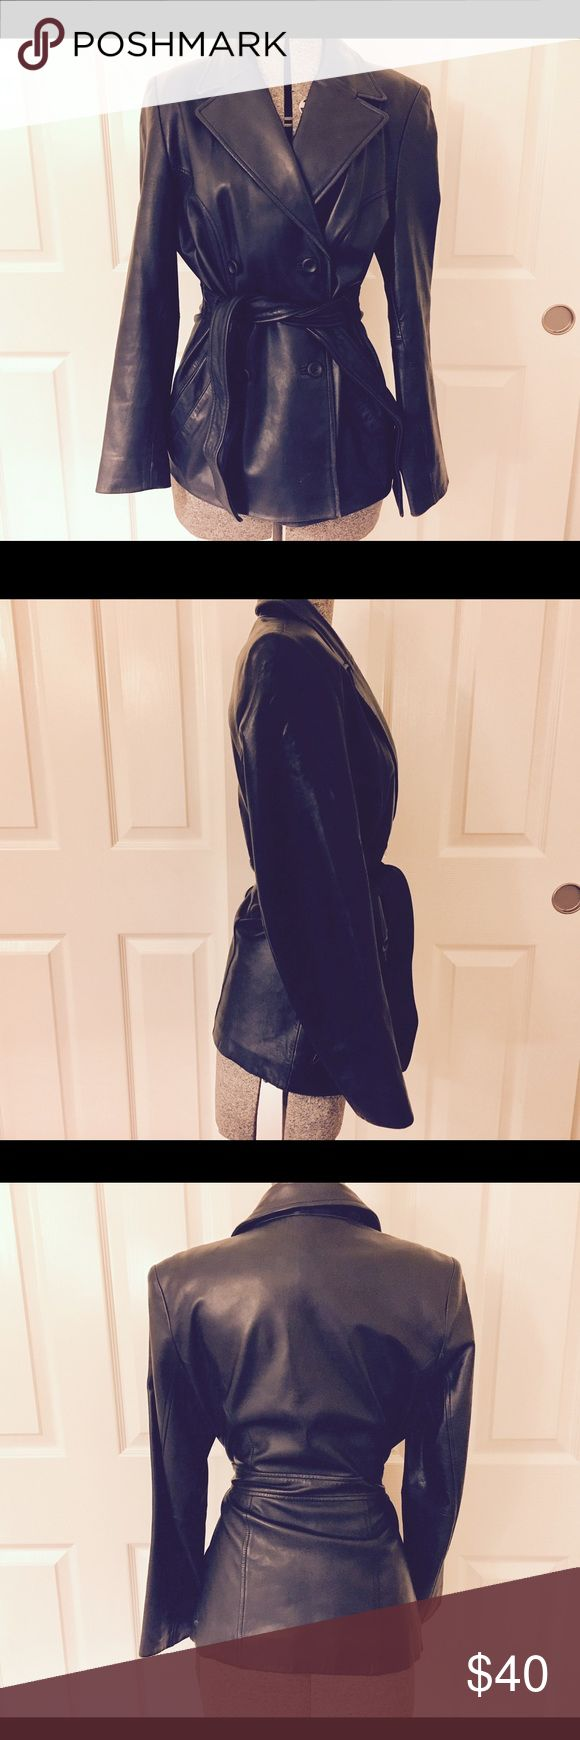 Buttery soft lambskin leather jacket coat size s Stunning  black warm and cozy buttery soft lambskin leather boat with four buttons and a waist tie excellent condition. Valerie Stevens Jackets & Coats